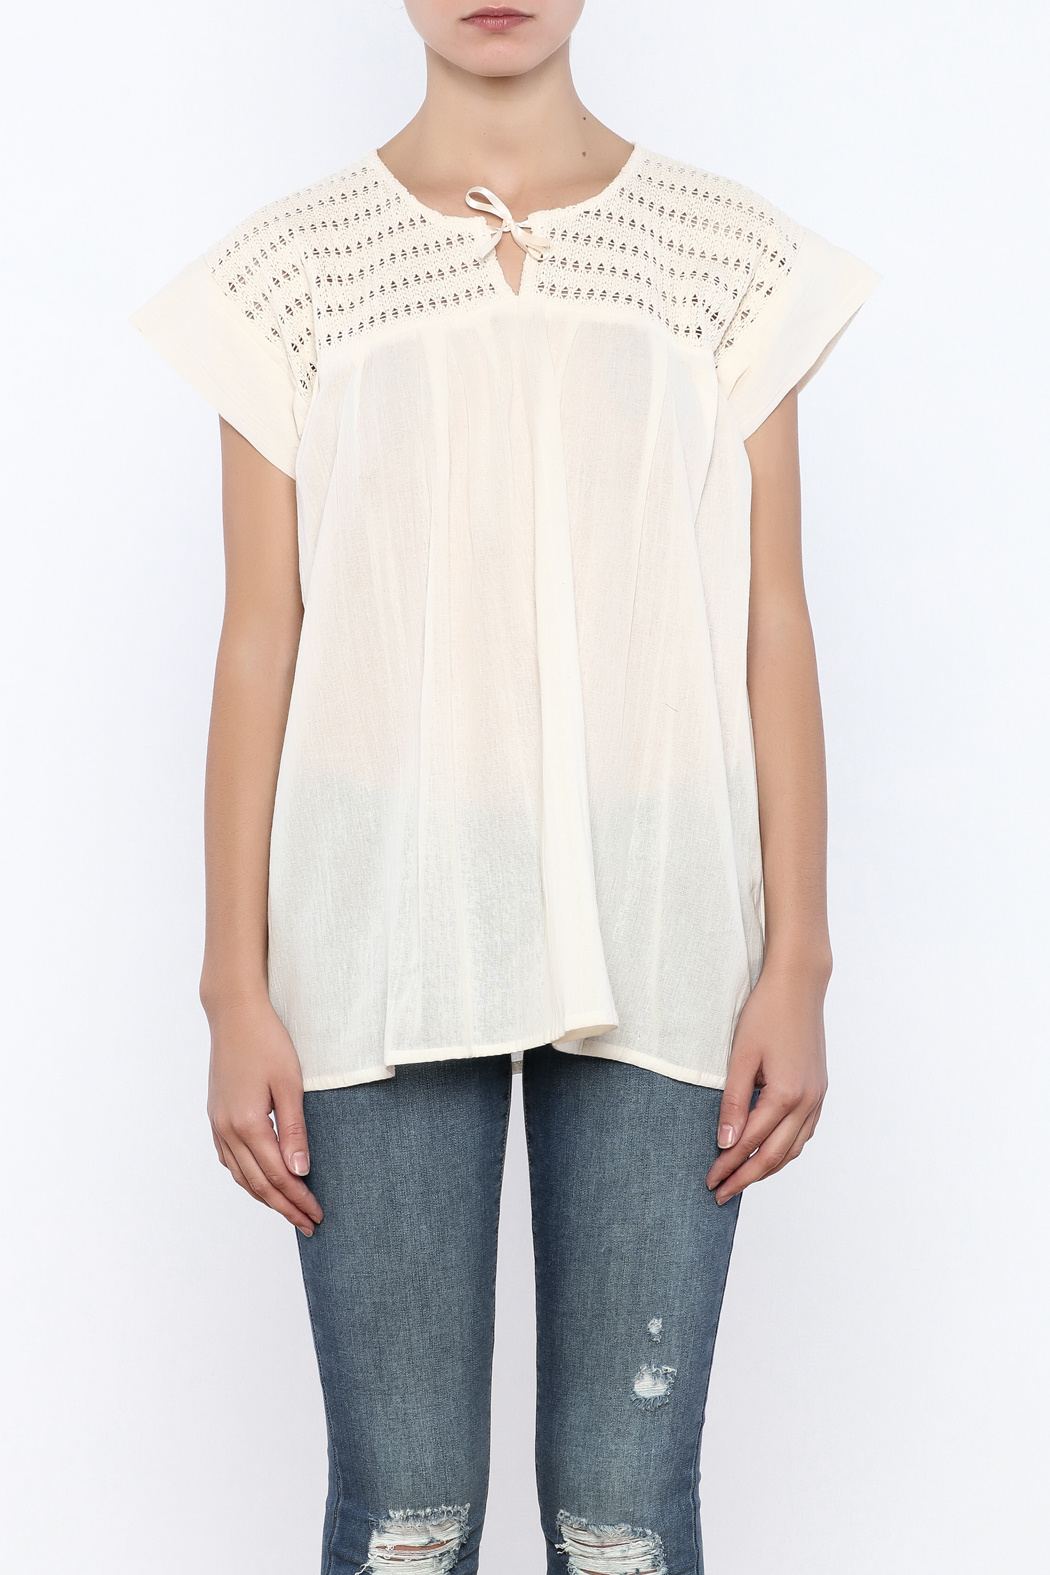 Nativa Natural Mia Blouse - Side Cropped Image